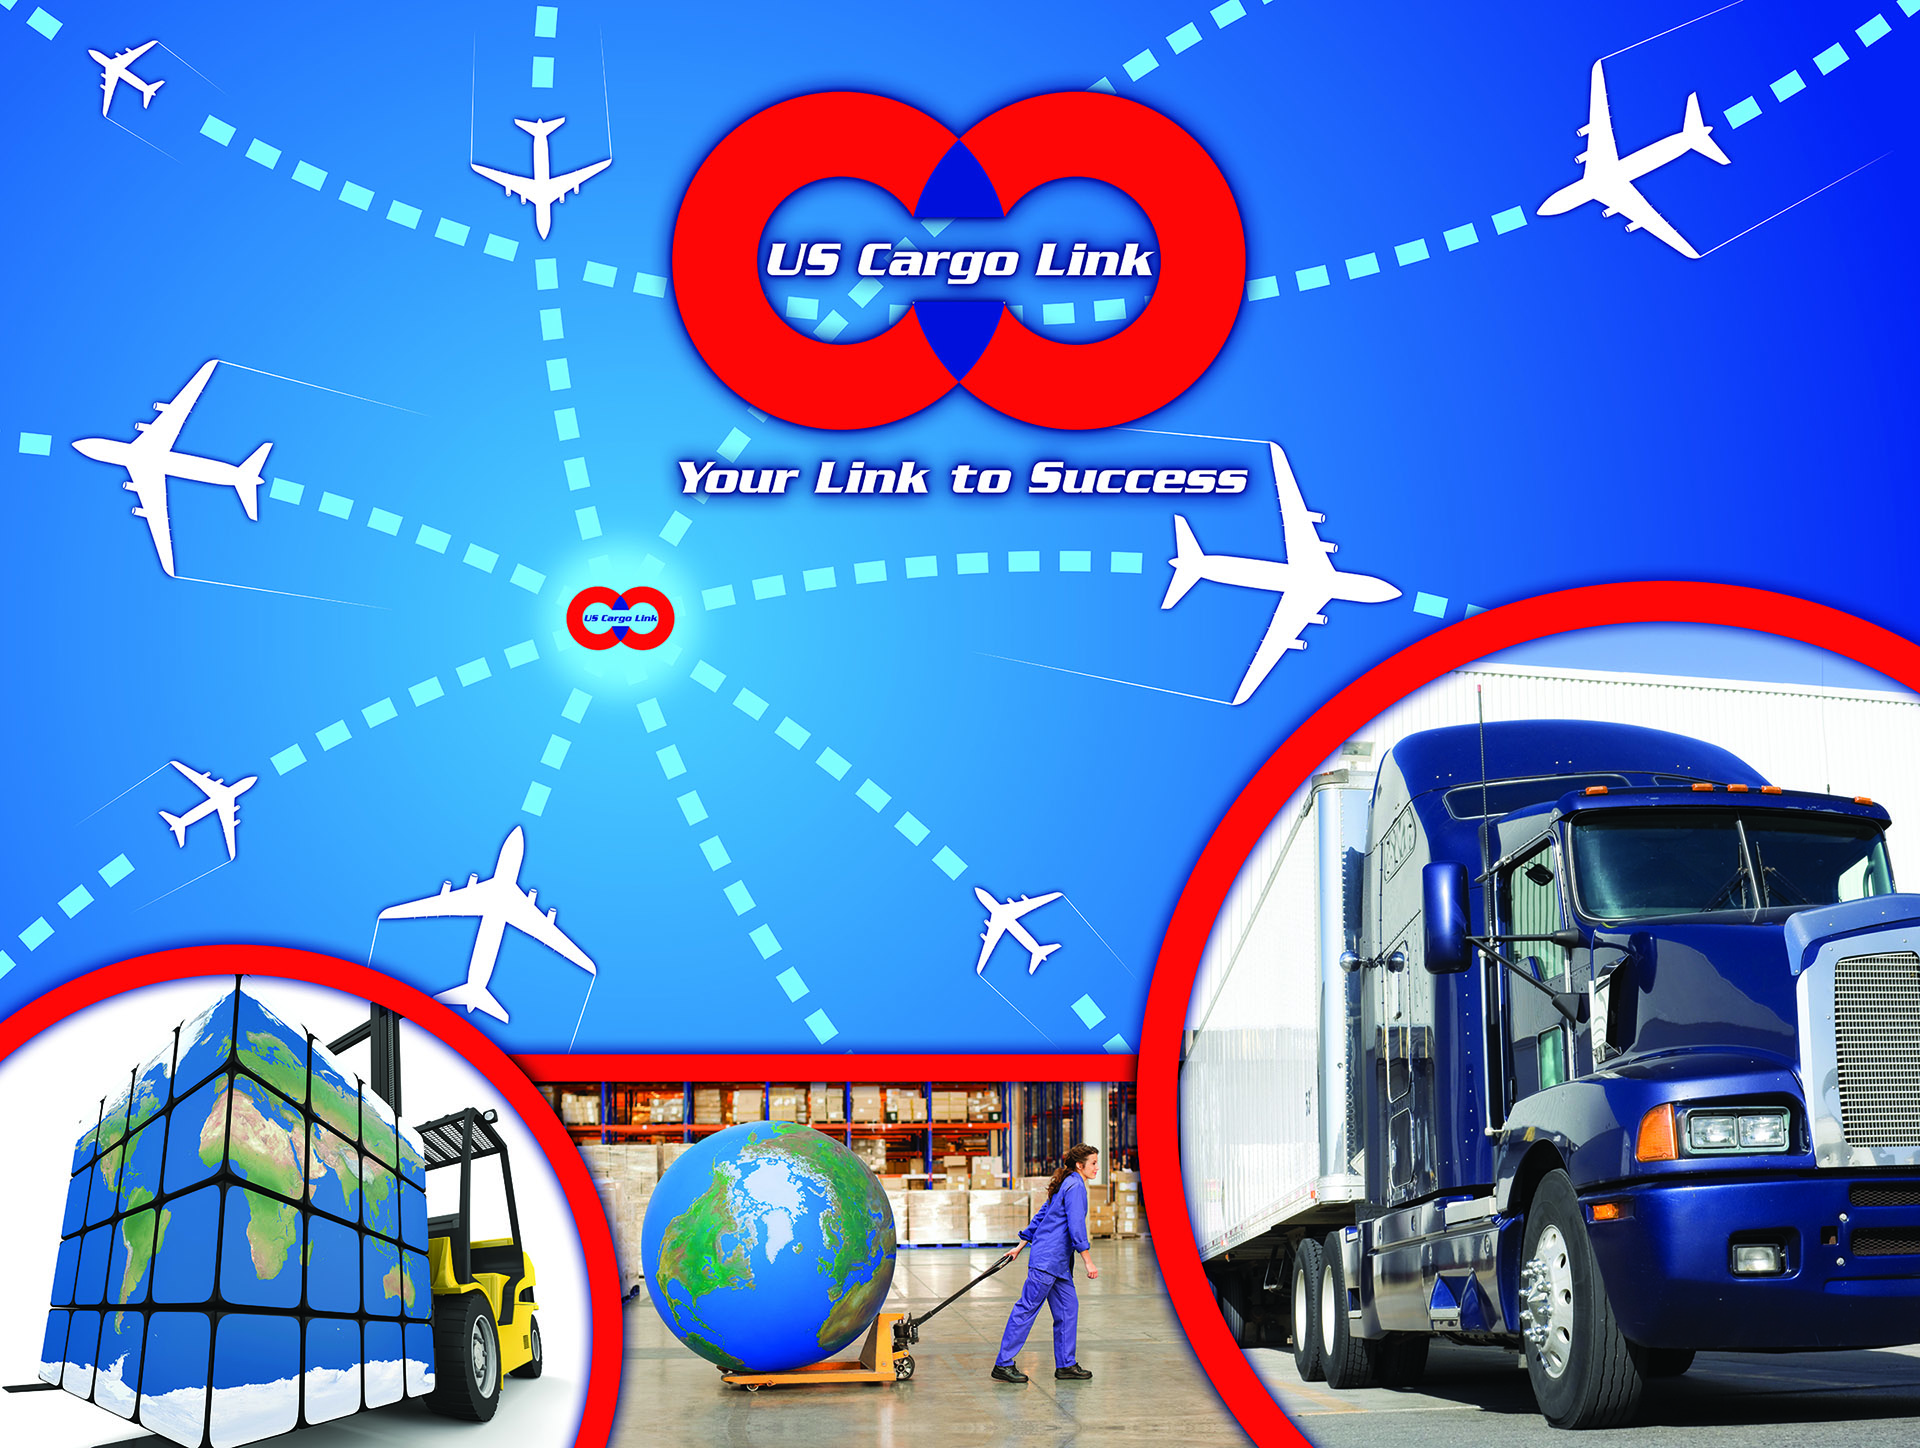 US Cargo Link Why Choose Us